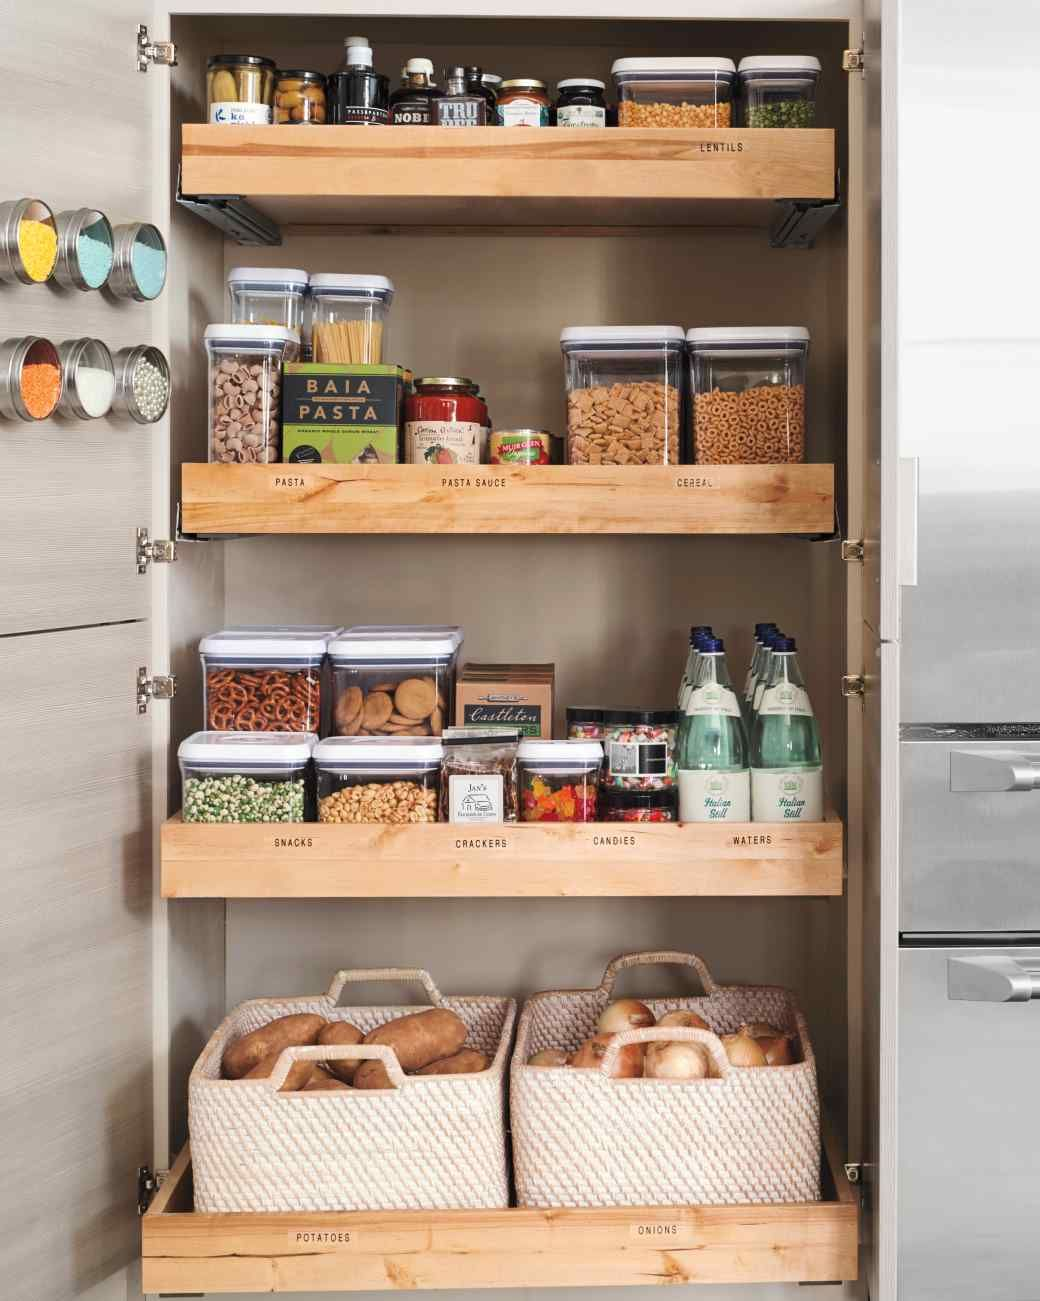 Organize Your Kitchen Cabinets In Nine Easy Steps Small Kitchen Storage Small Kitchen Organization Pantry Storage